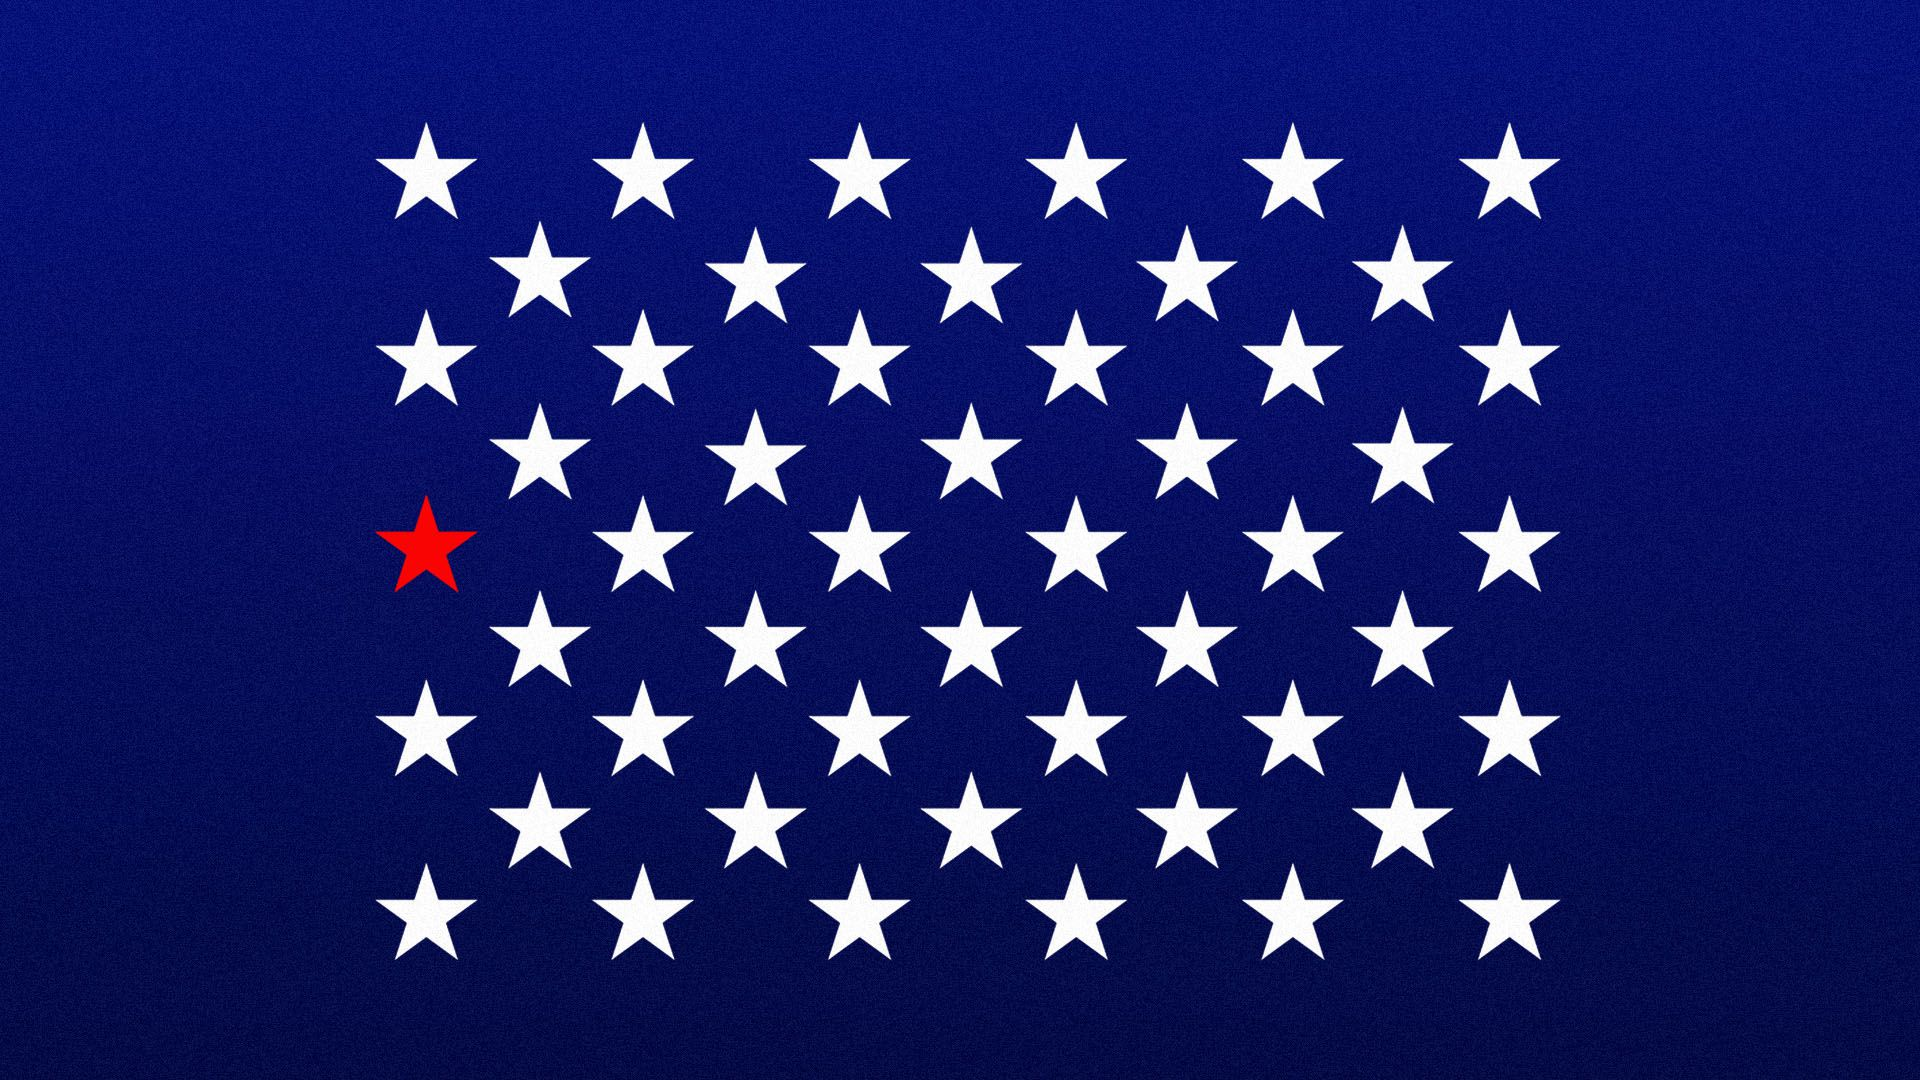 Illustration of one red star representing California amongst the field of 50 white stars on the United States flag  Attachments area